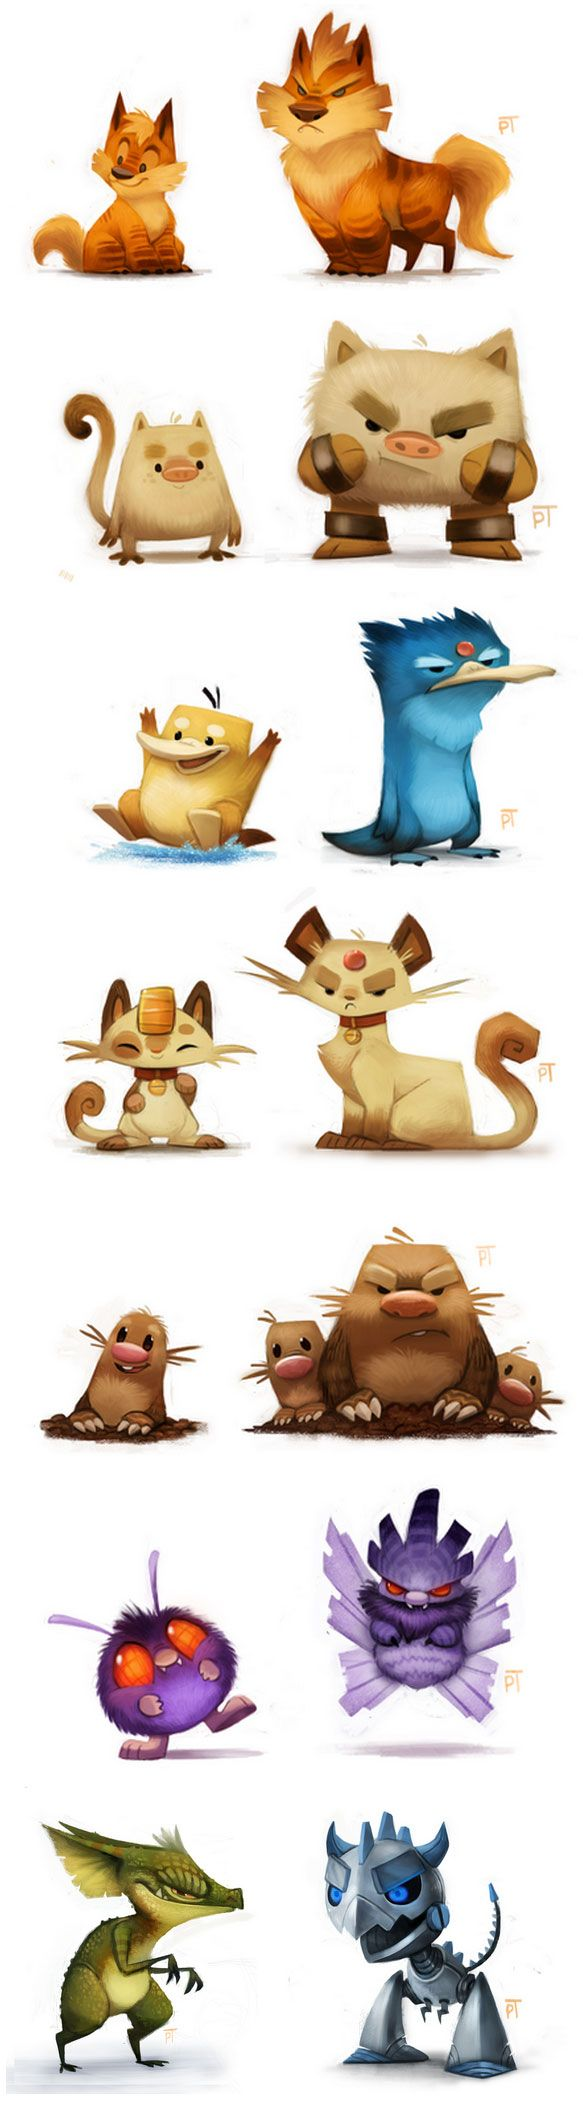 Cartoon Characters Ideas : More awesome creature and monster character designs by